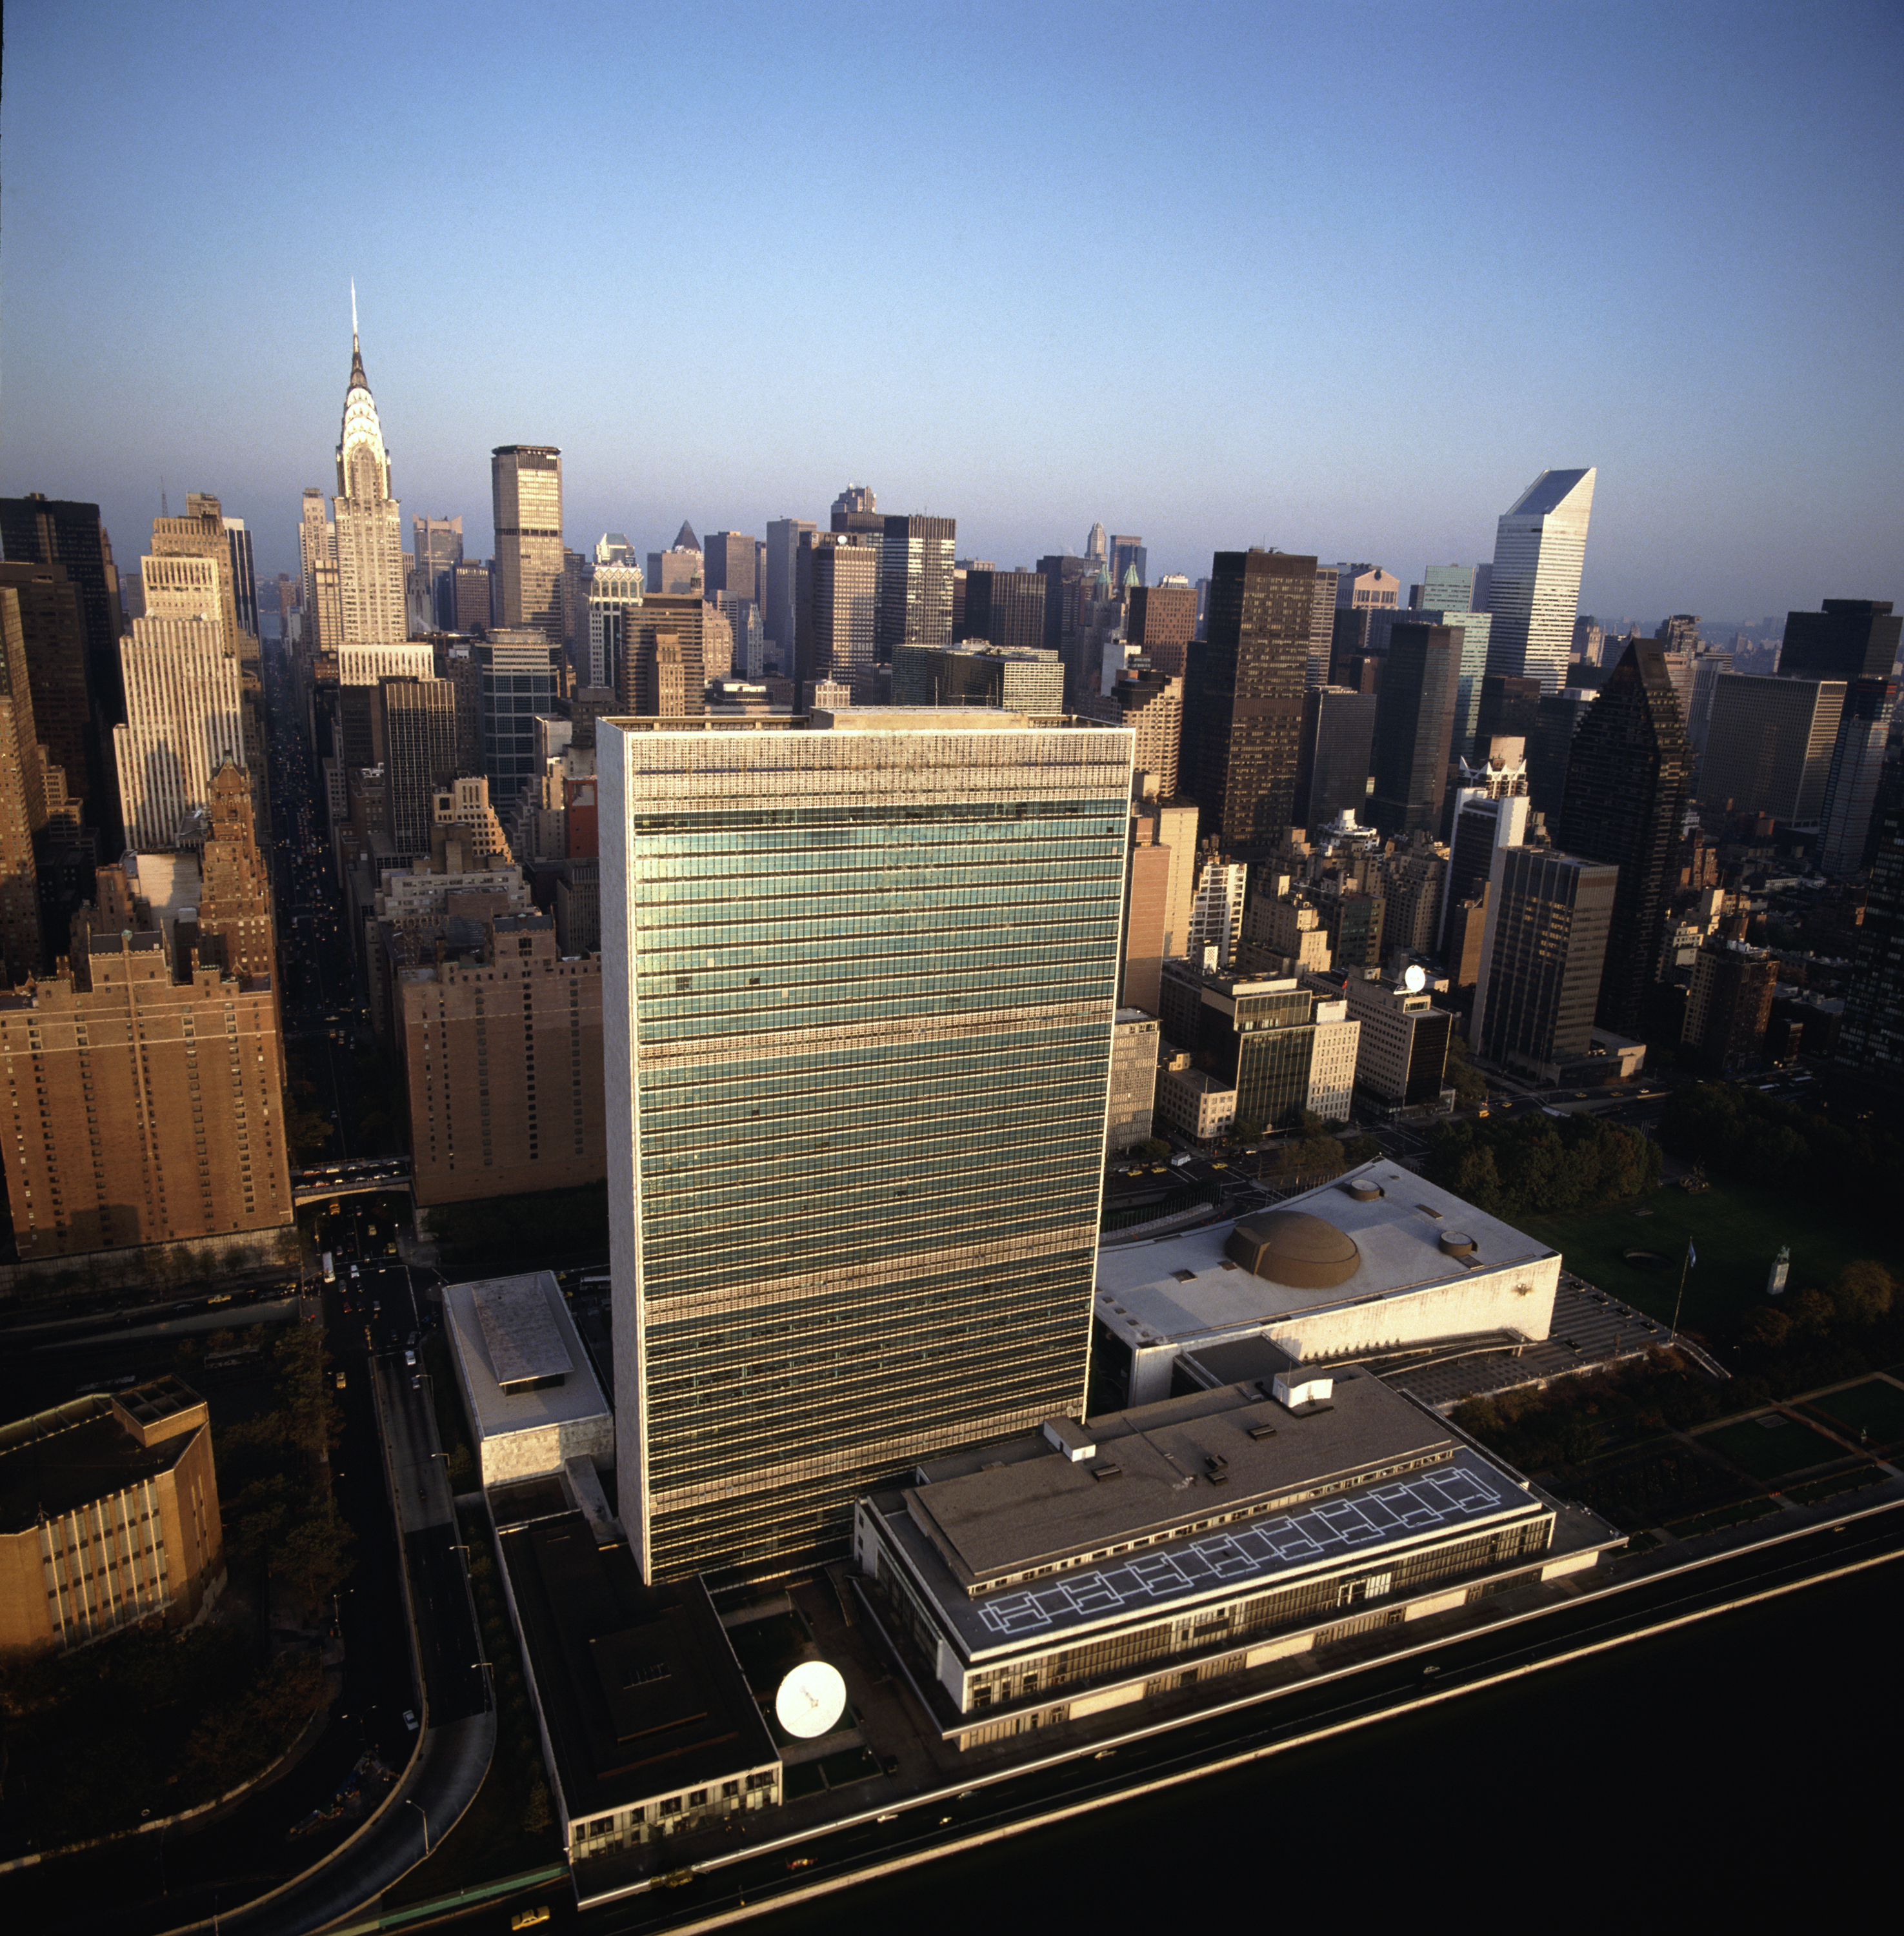 The UN Headquarters in New York